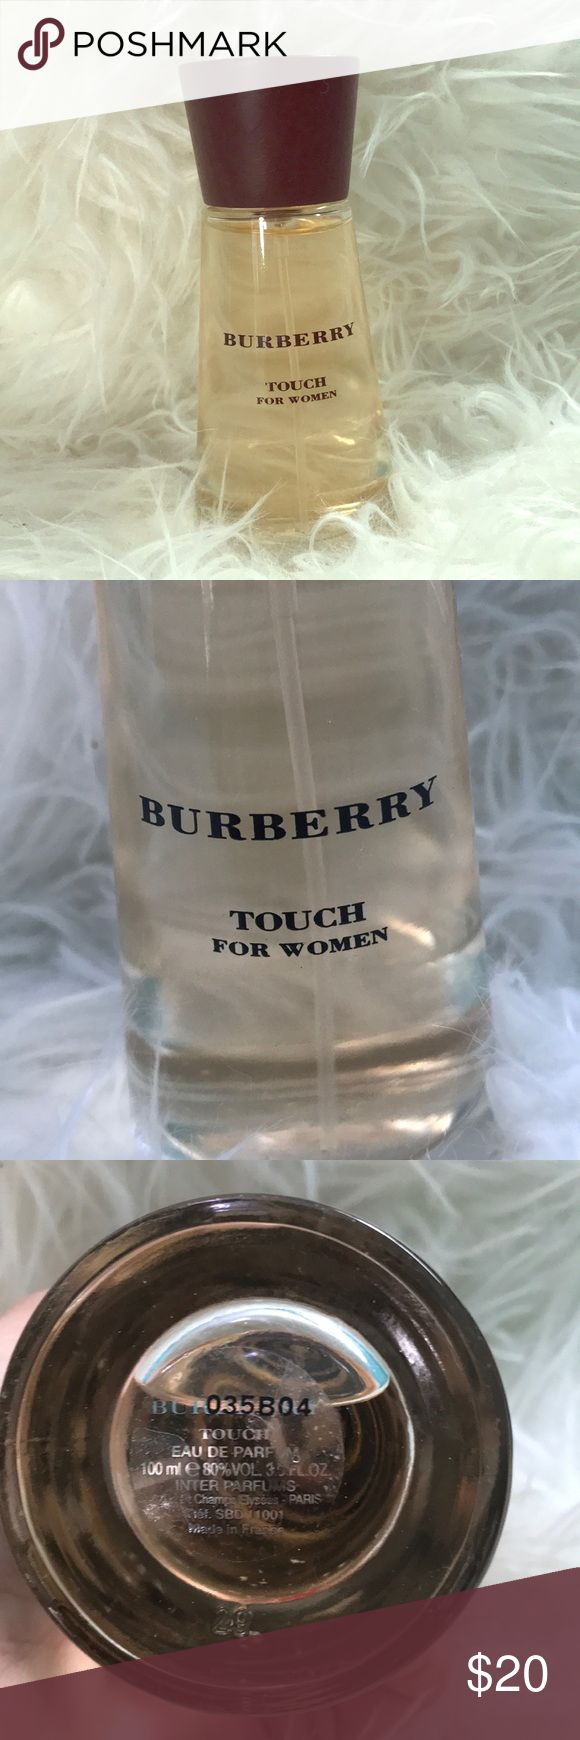 Burberry Touch for Woman EDP Barely used 100ml/3.3fl oz bottle of Burberry touch for woman. Eau de Parfum. No box included Burberry Other